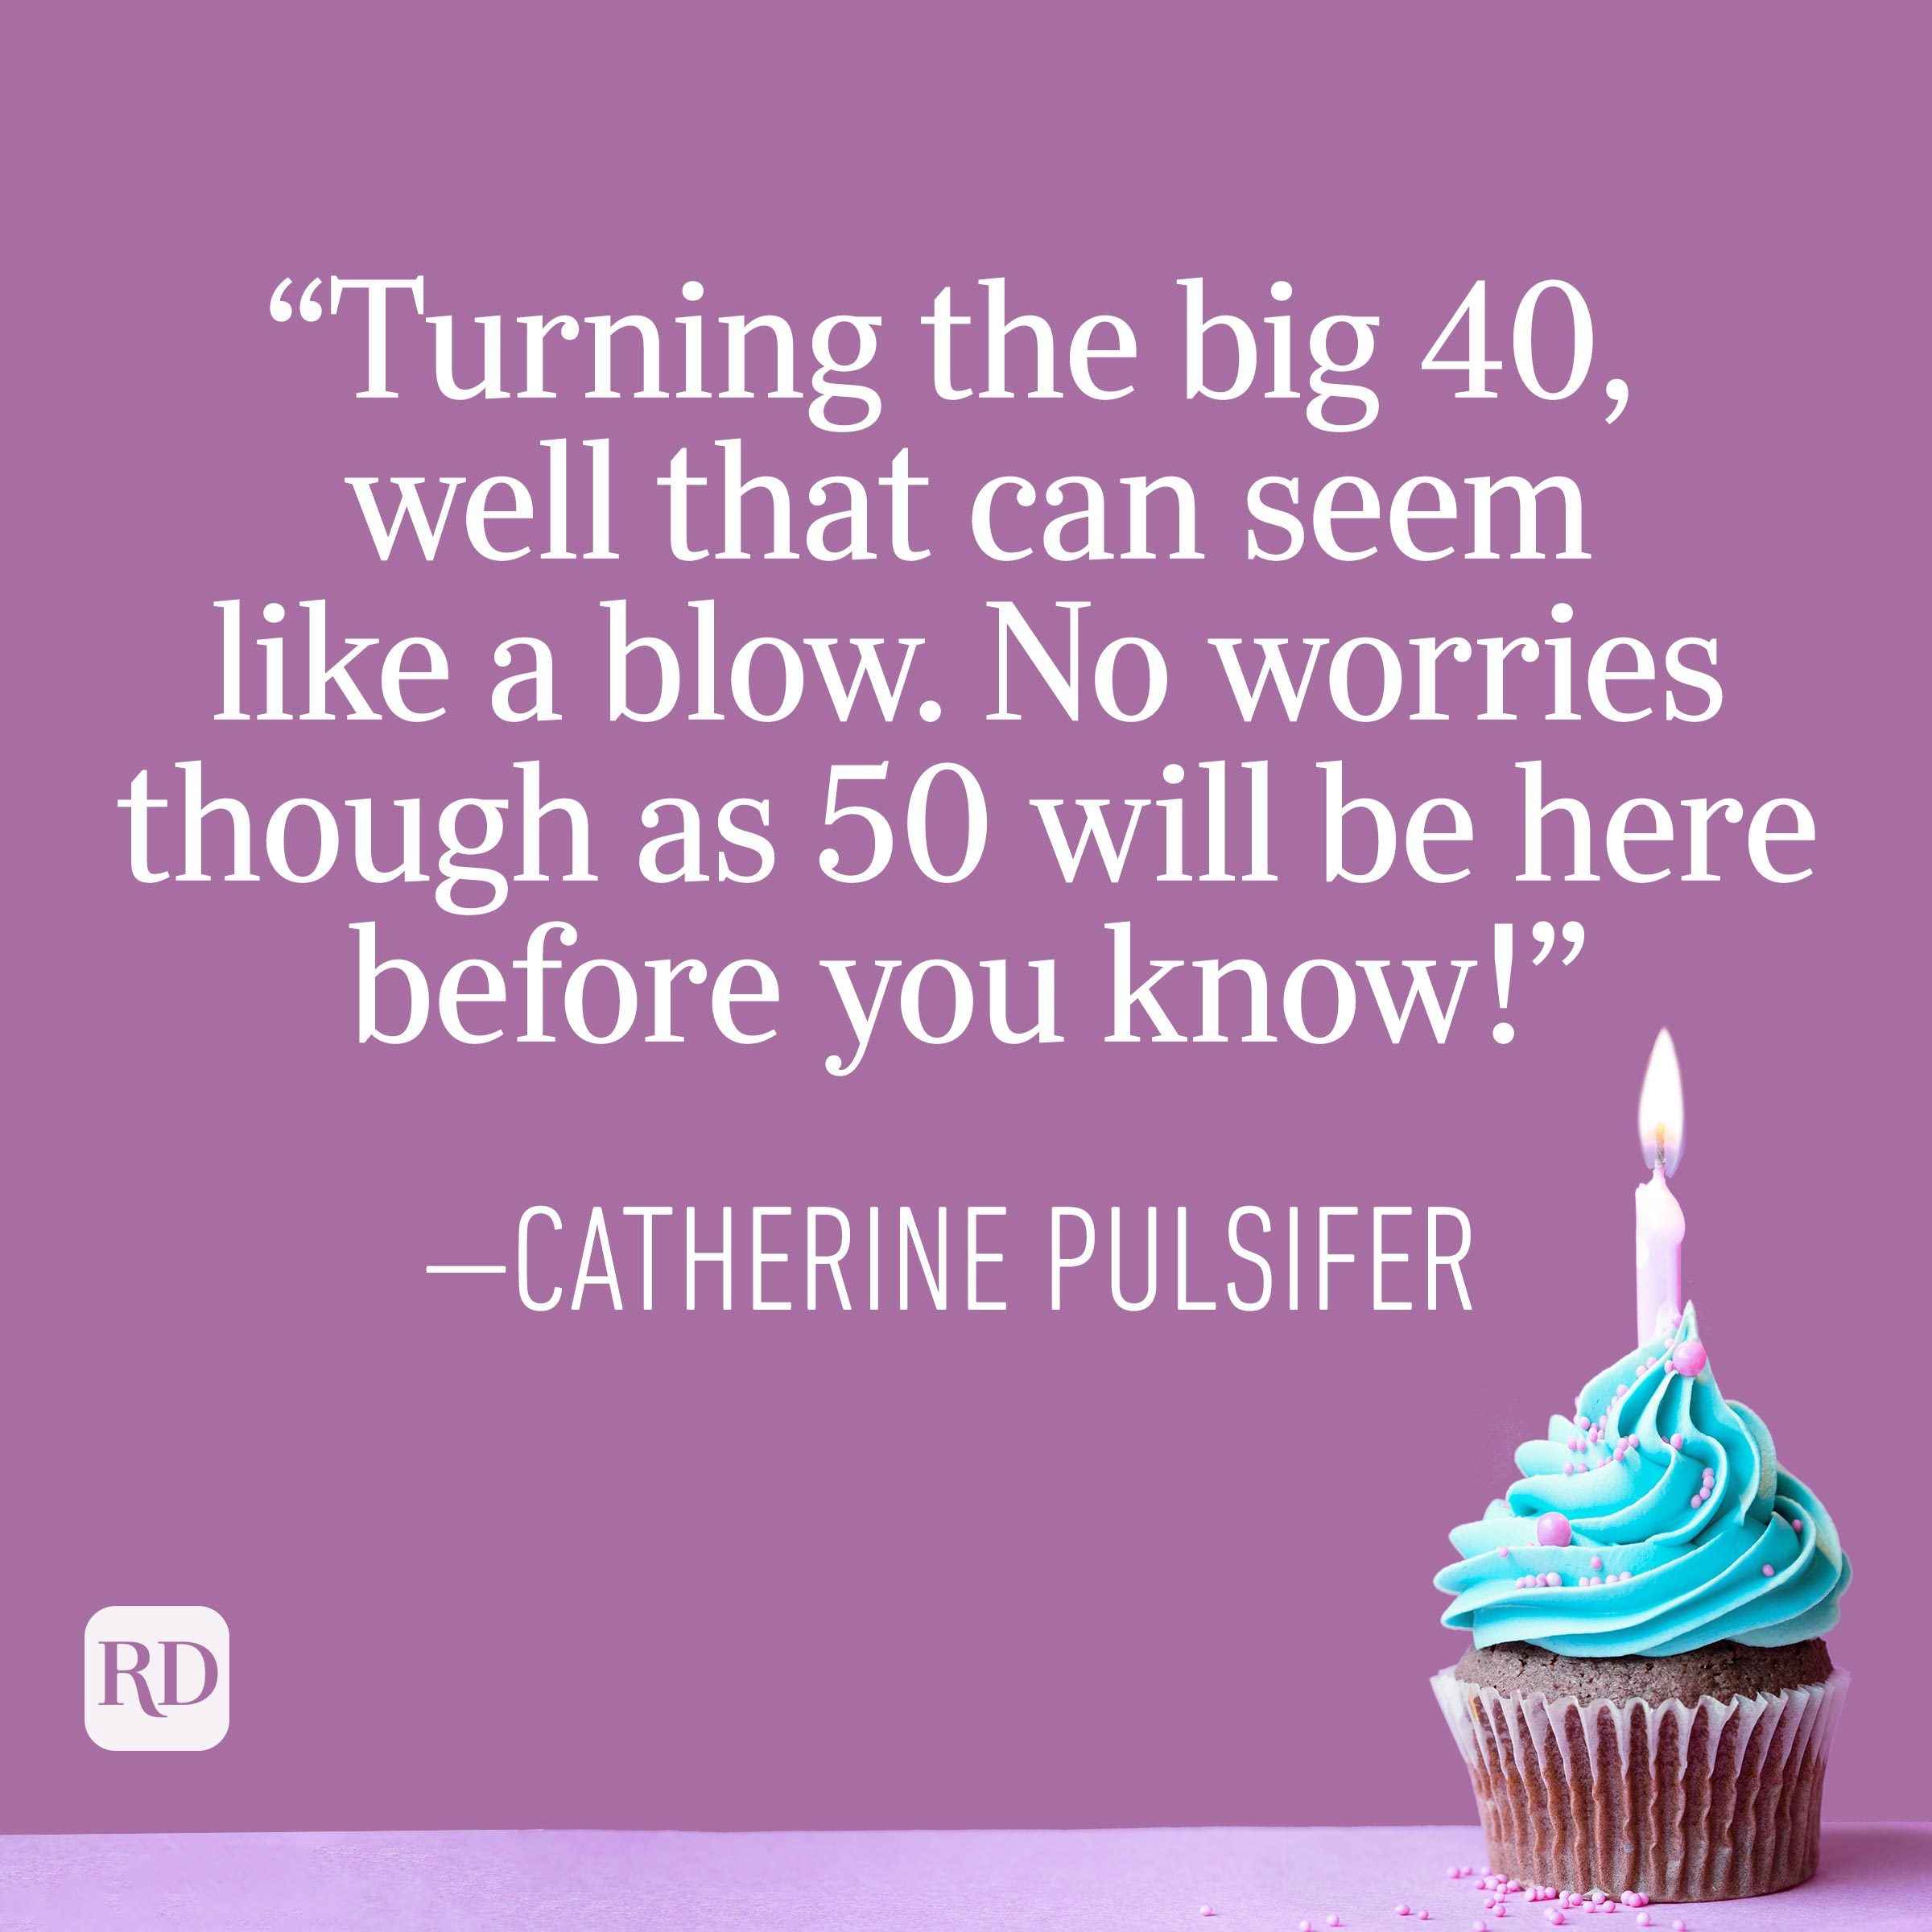 """""""Turning the big 40, well that can seem like a blow. No worries though as 50 will be here before you know!"""" —Catherine Pulsifer"""